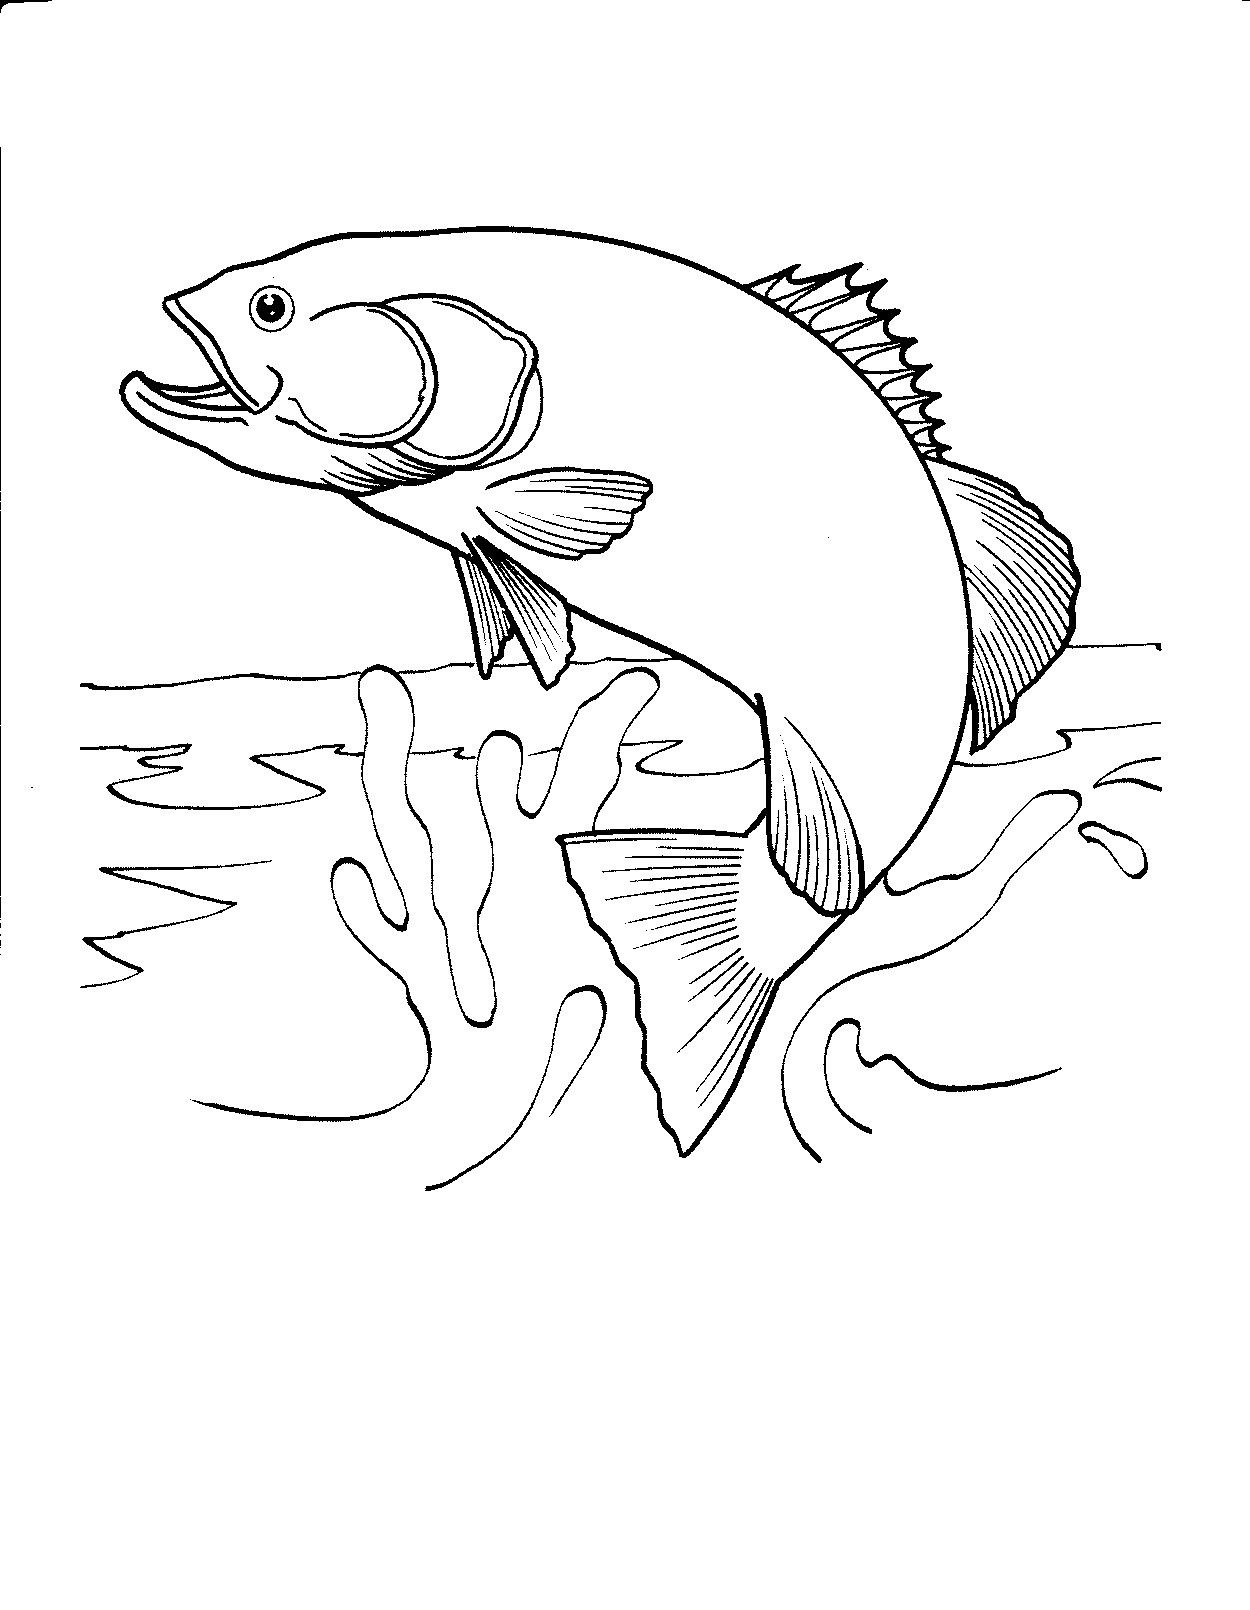 Best ideas about Fishing Printable Coloring Pages . Save or Pin Printable Fish Coloring Pages Now.